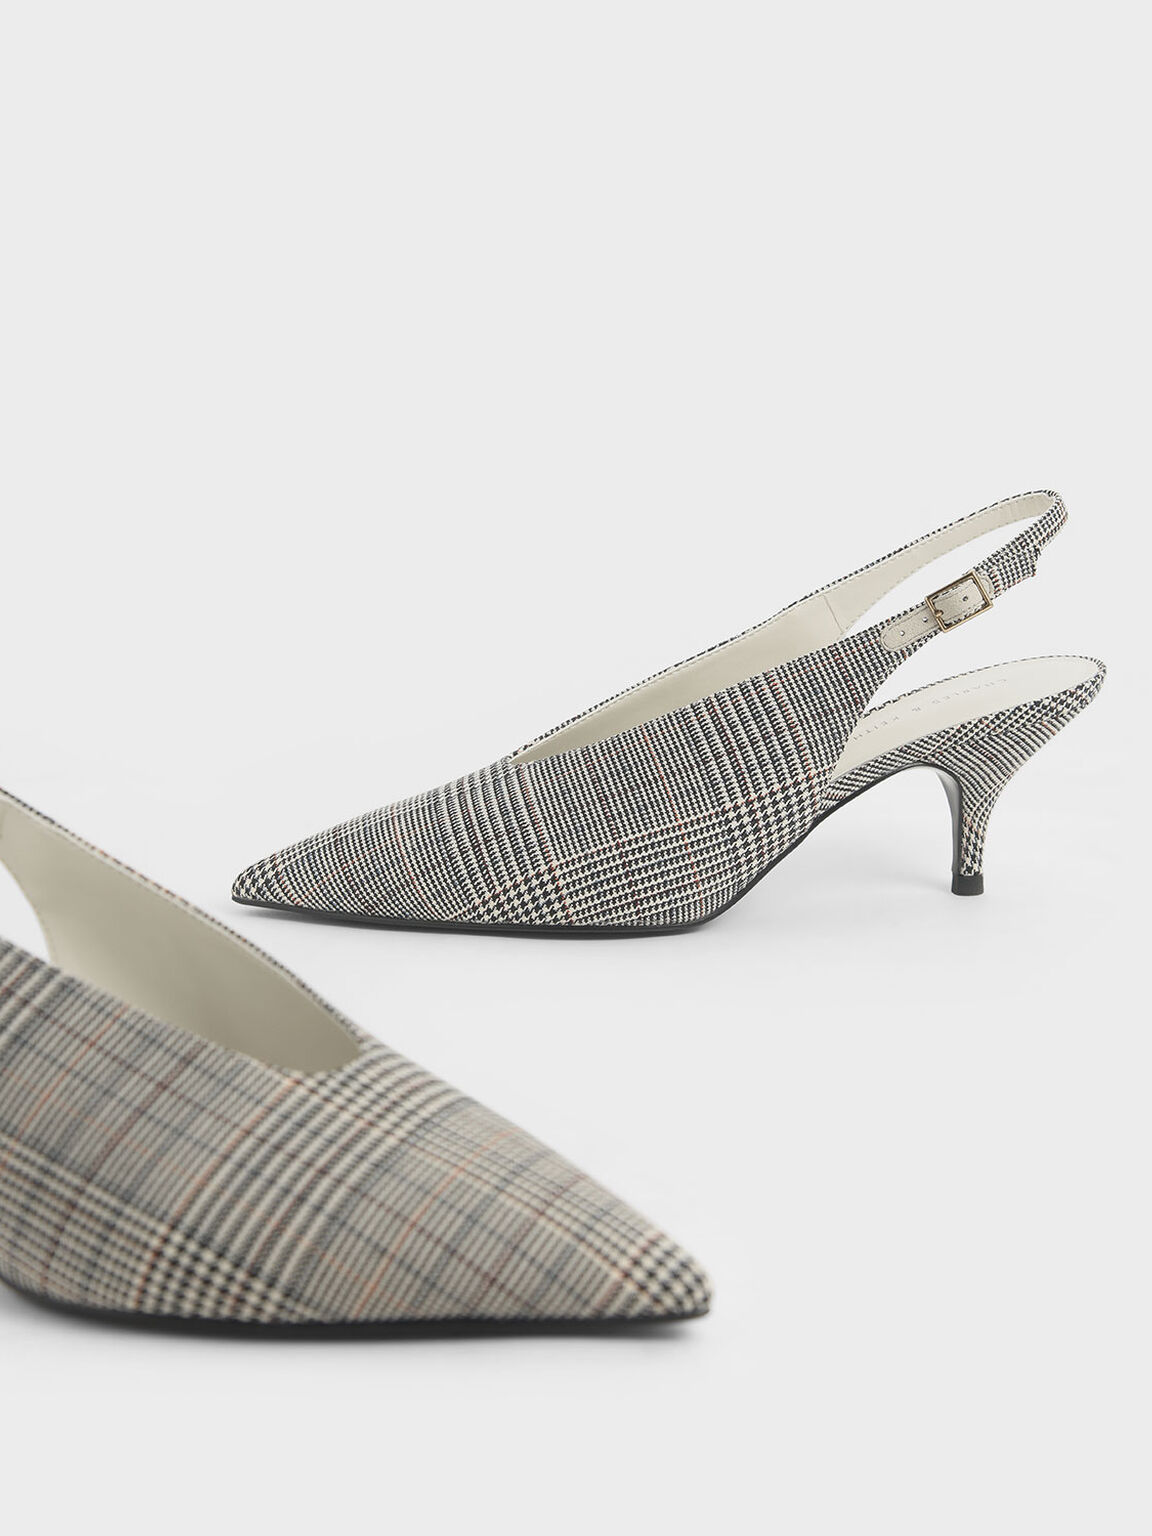 Check-Print Pointed Toe Slingback Pumps, Light Grey, hi-res